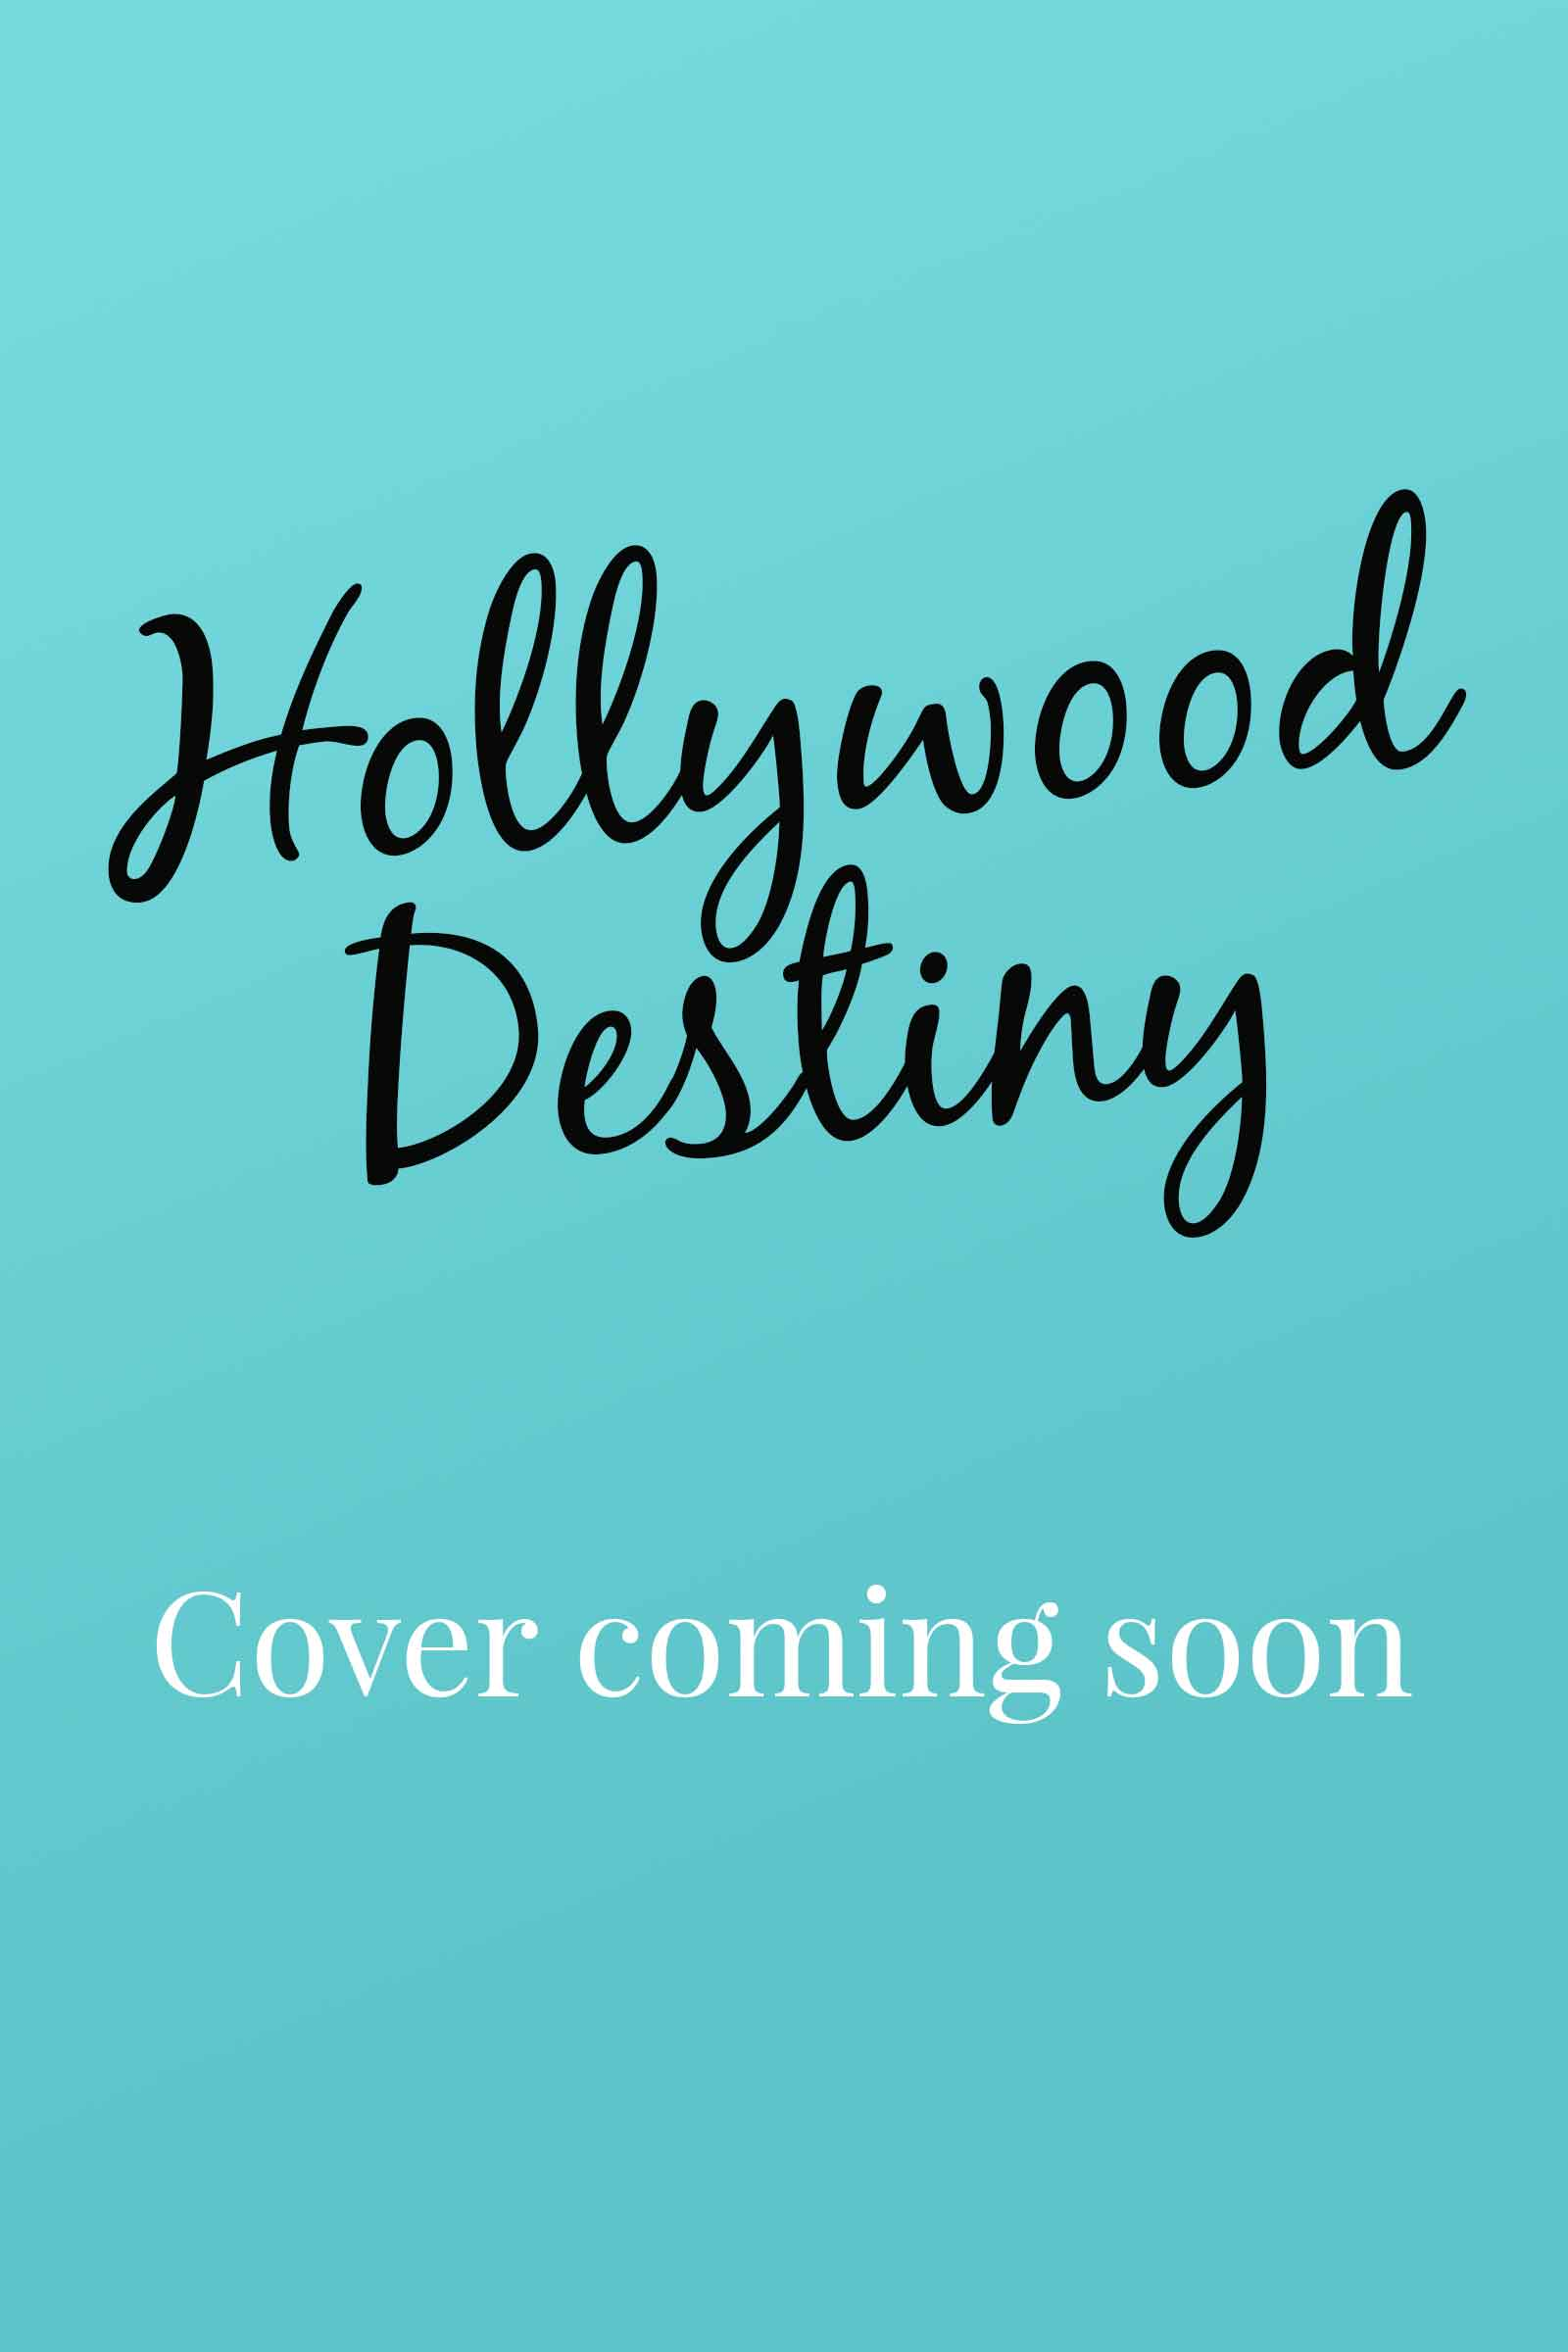 Hollywood Destiny cover coming soon